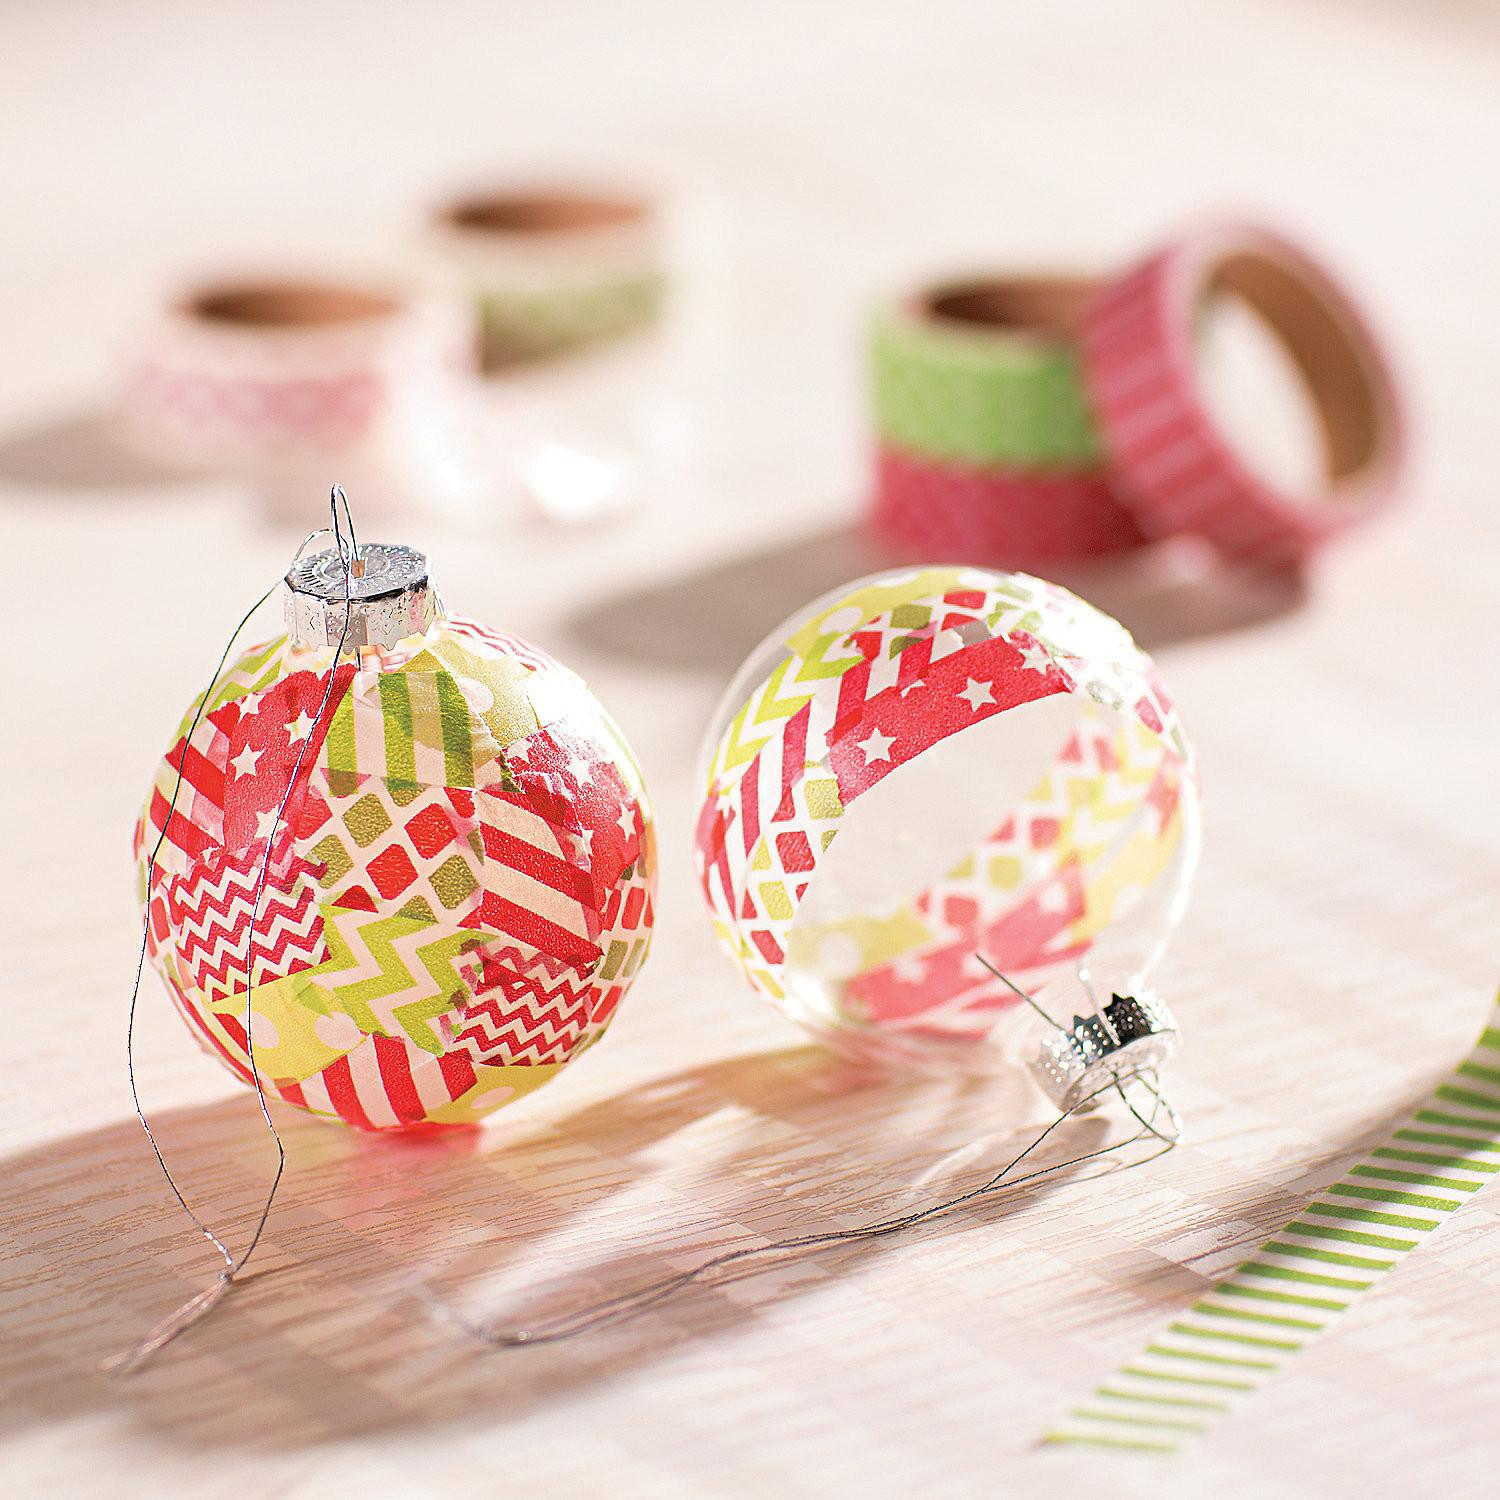 Holiday Washi Tape Ideas